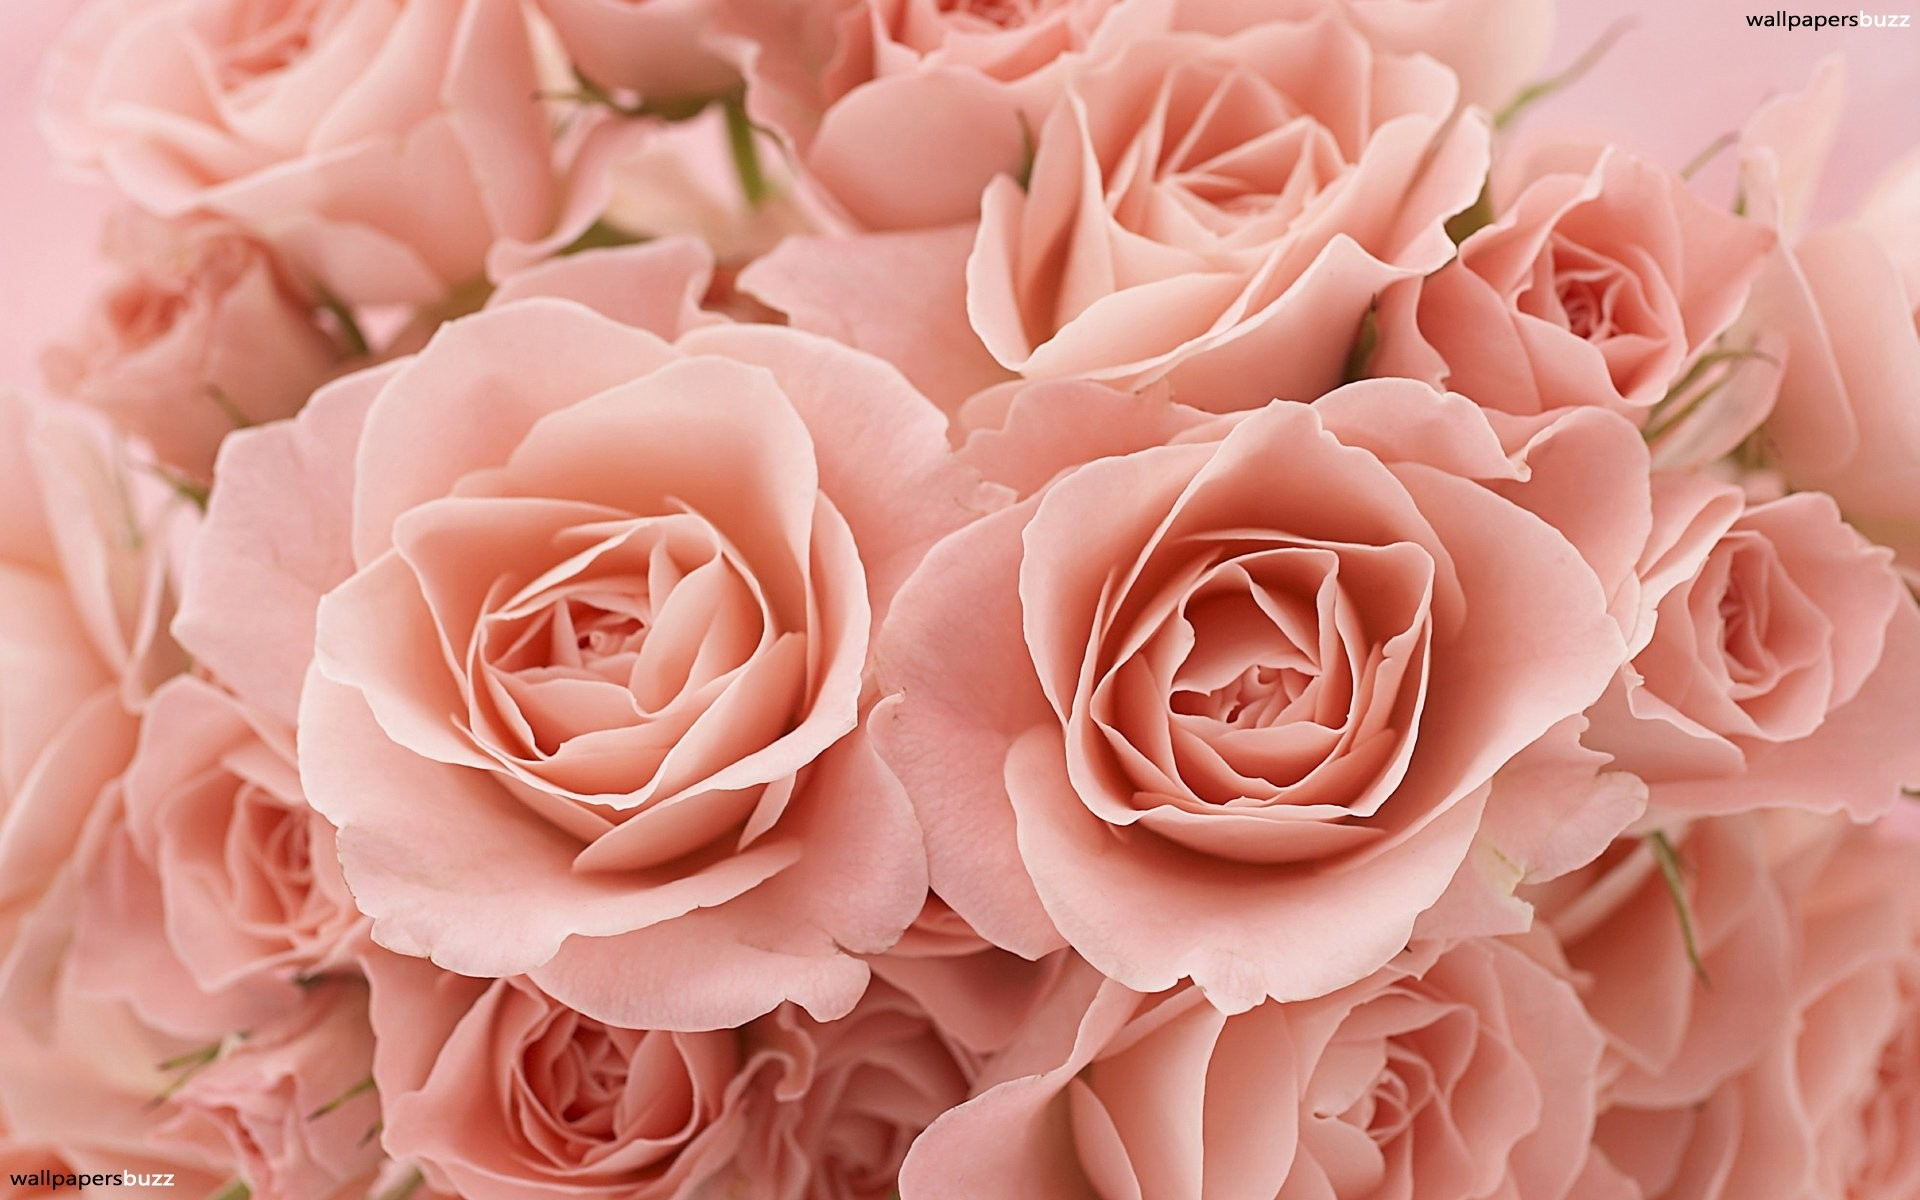 Res: 1920x1200, B Pink Roses Hd For Wallpaper Of Mobile